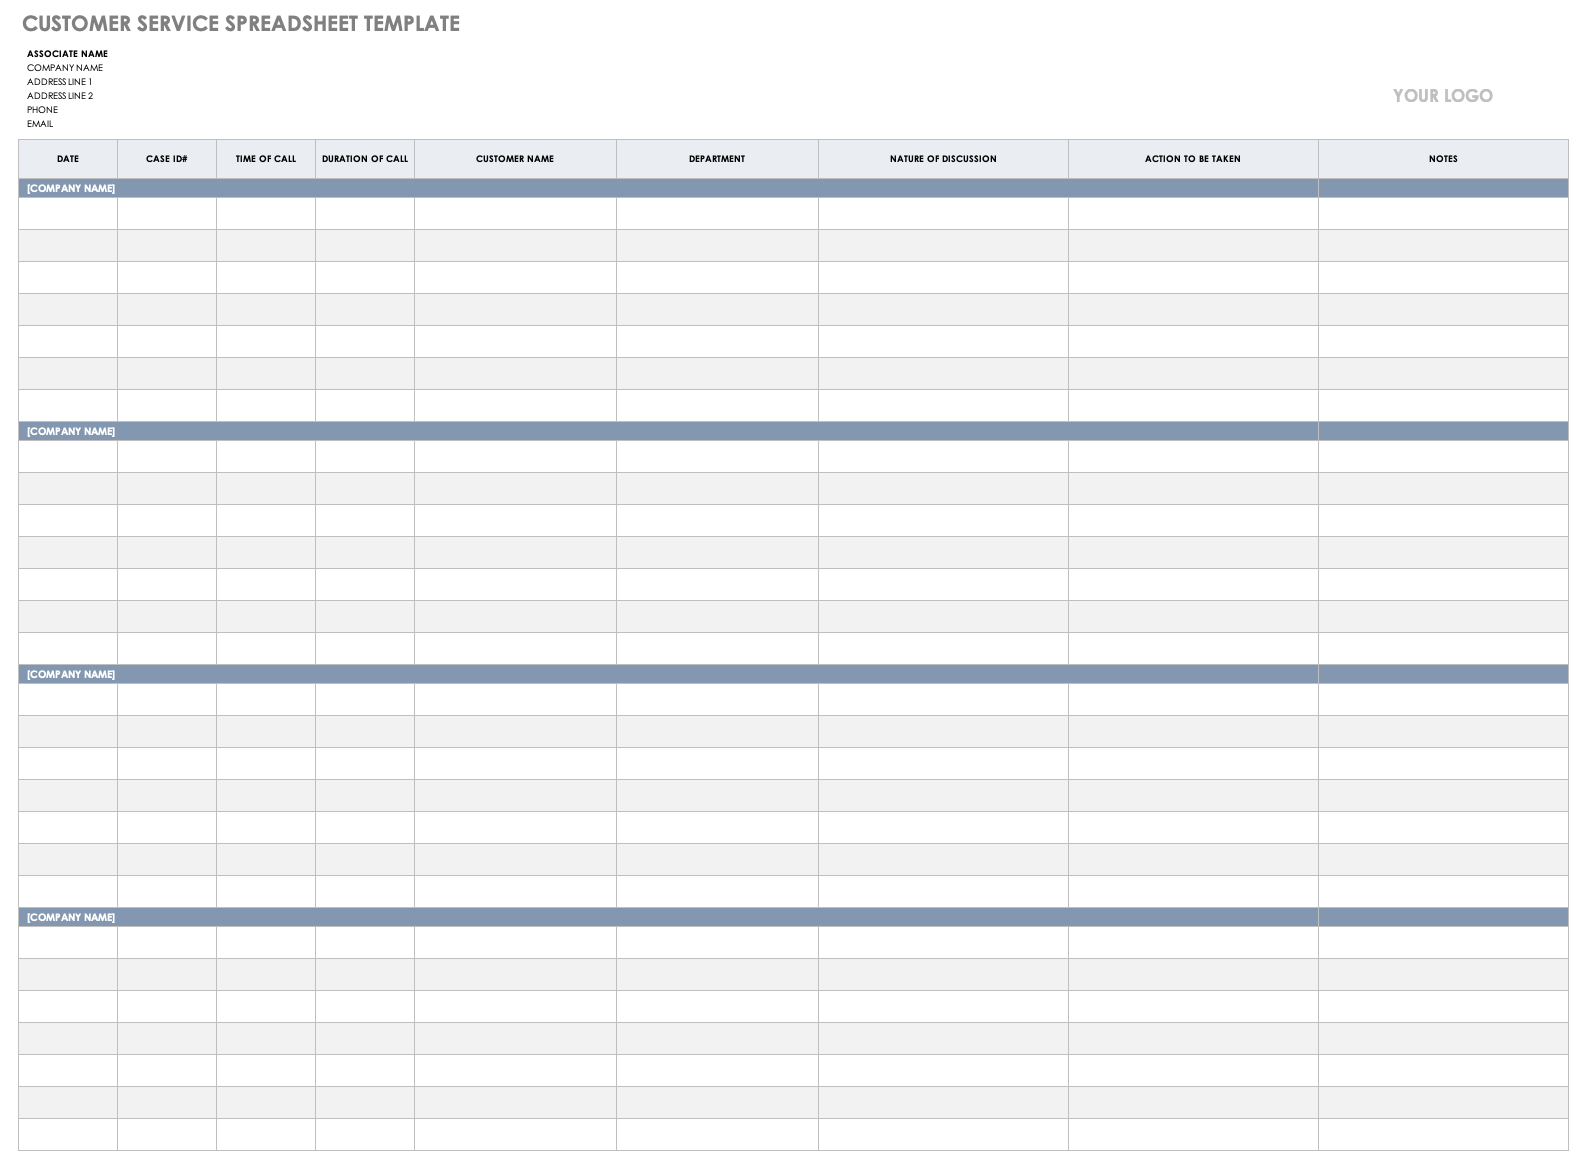 Hospitals, doctor's offices, and other healthcare organizations can use this free contact tracing form to collect contact details, emergency contact information, and the location and contact details of individuals who have come into contact with the patient. Free Call Tracking Templates Smartsheet